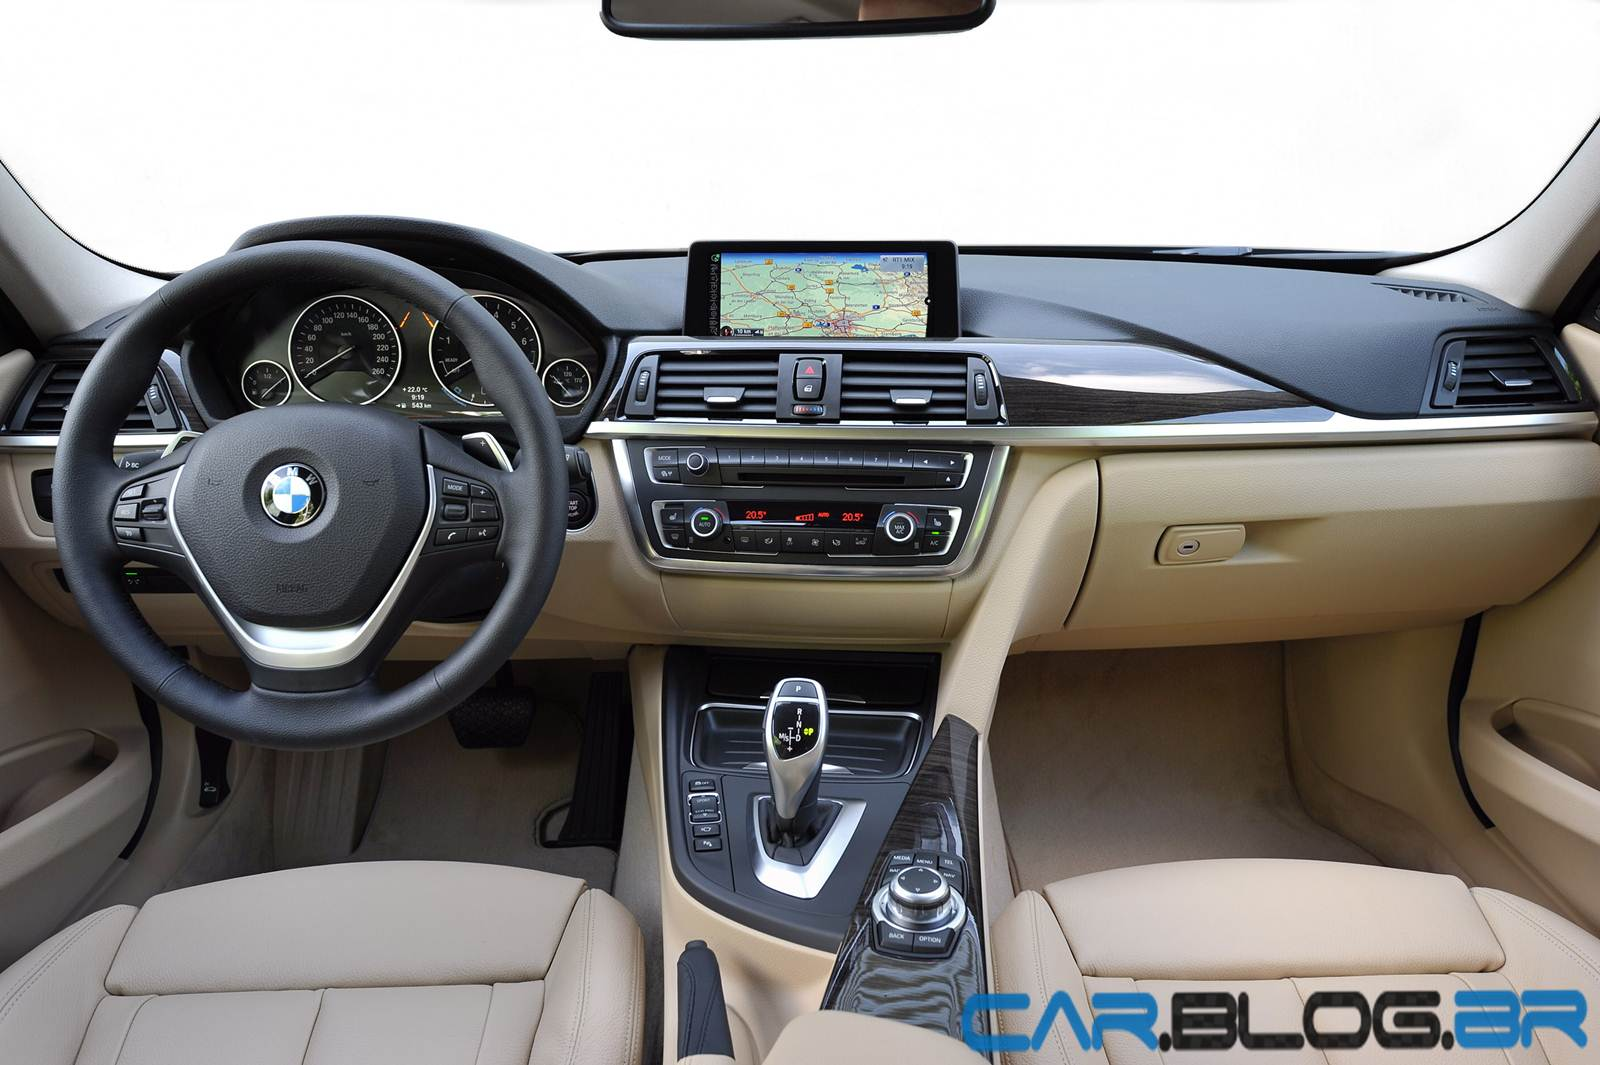 BMW_Touring_familiar_exterior_2 bwingr